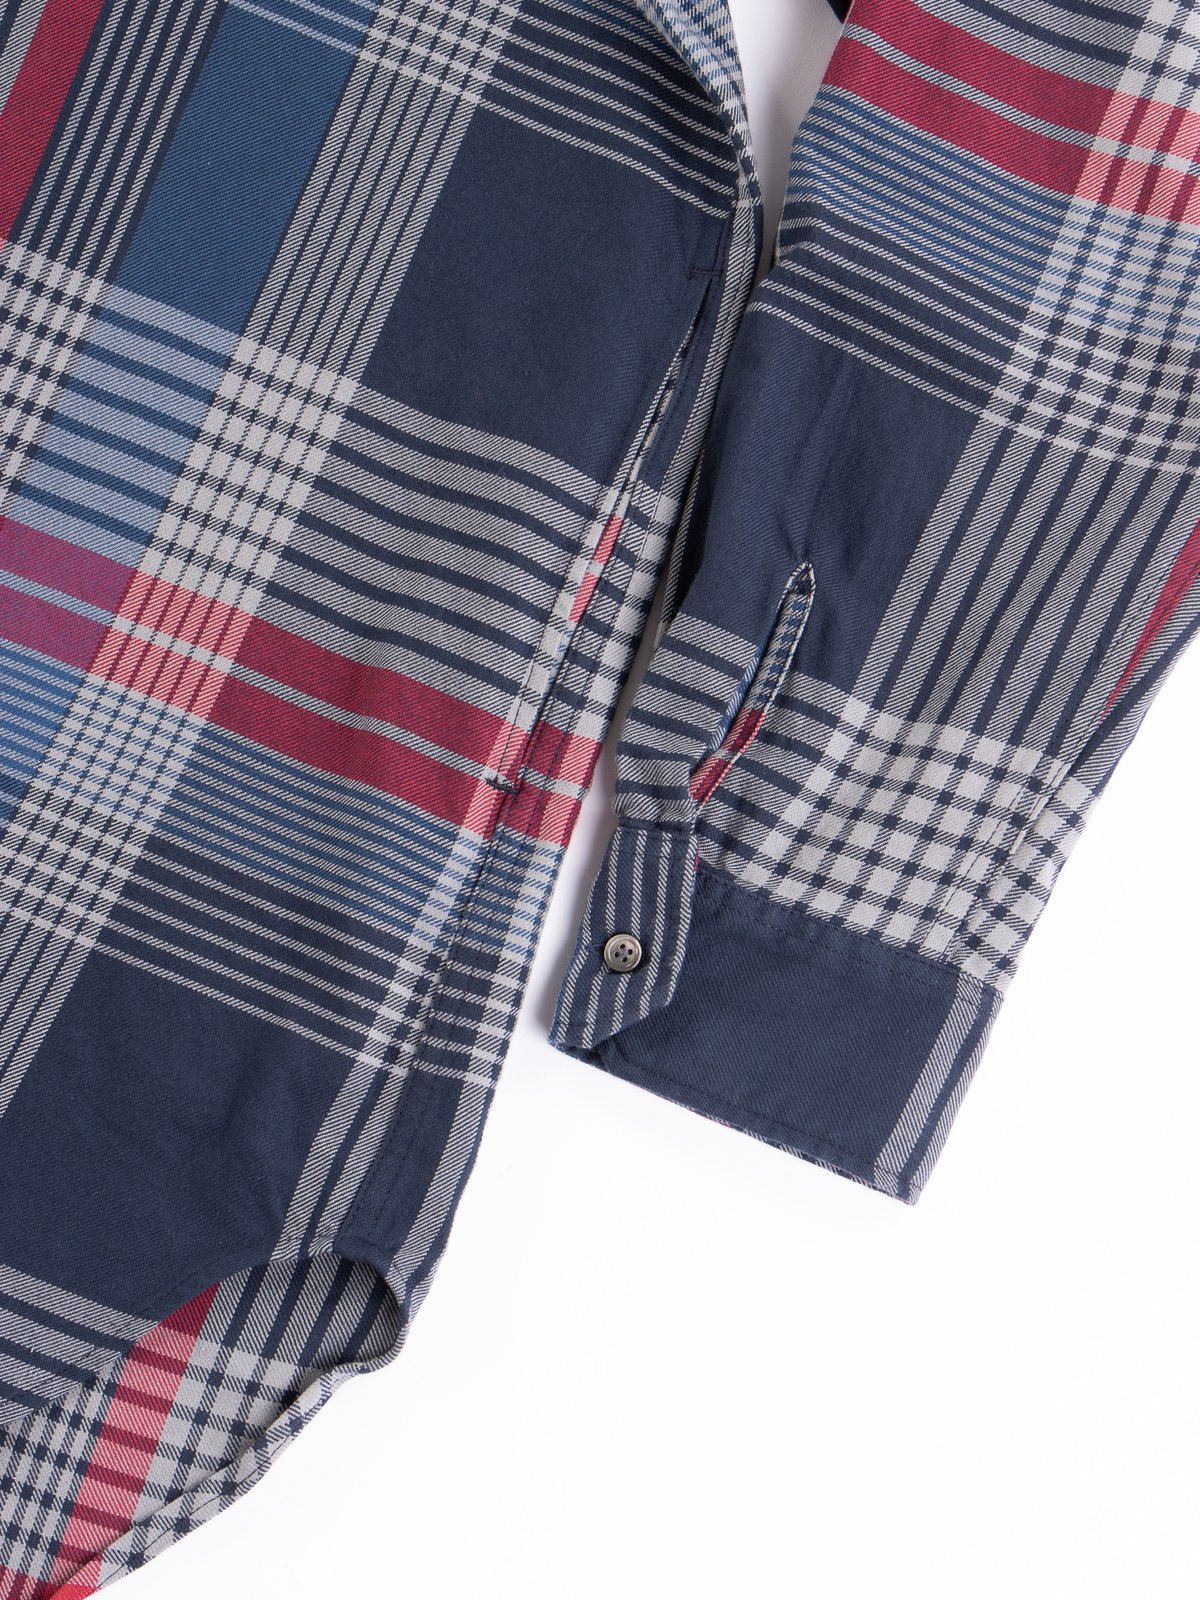 Navy/Grey/Red Cotton Twill Plaid Banded Collar Shirt - Image 4